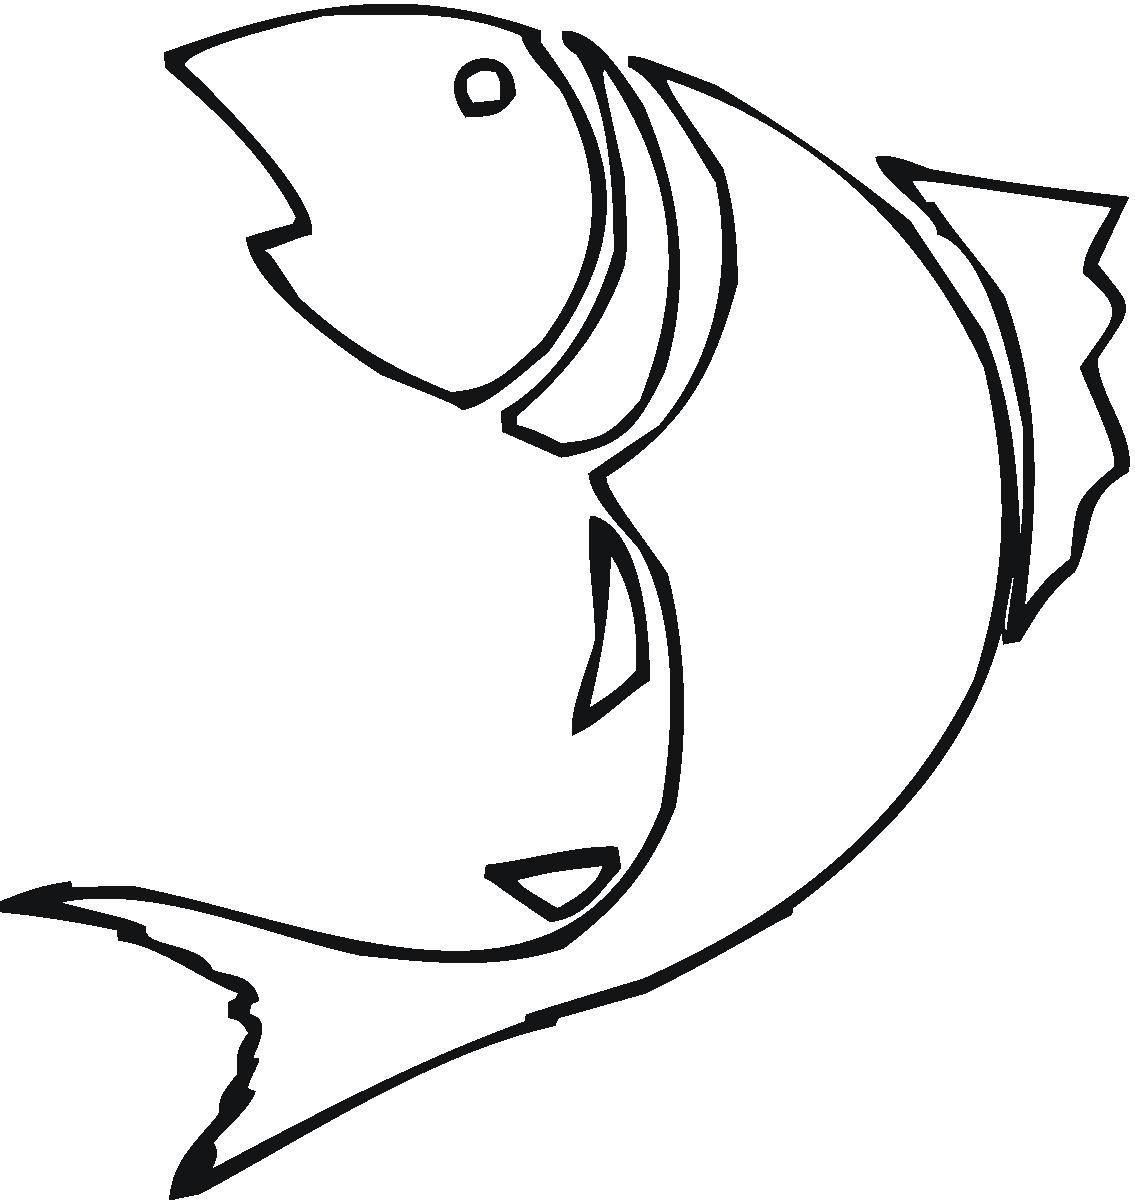 Drawing Lines With Svg : Fish line art aquarium drawing stock vector